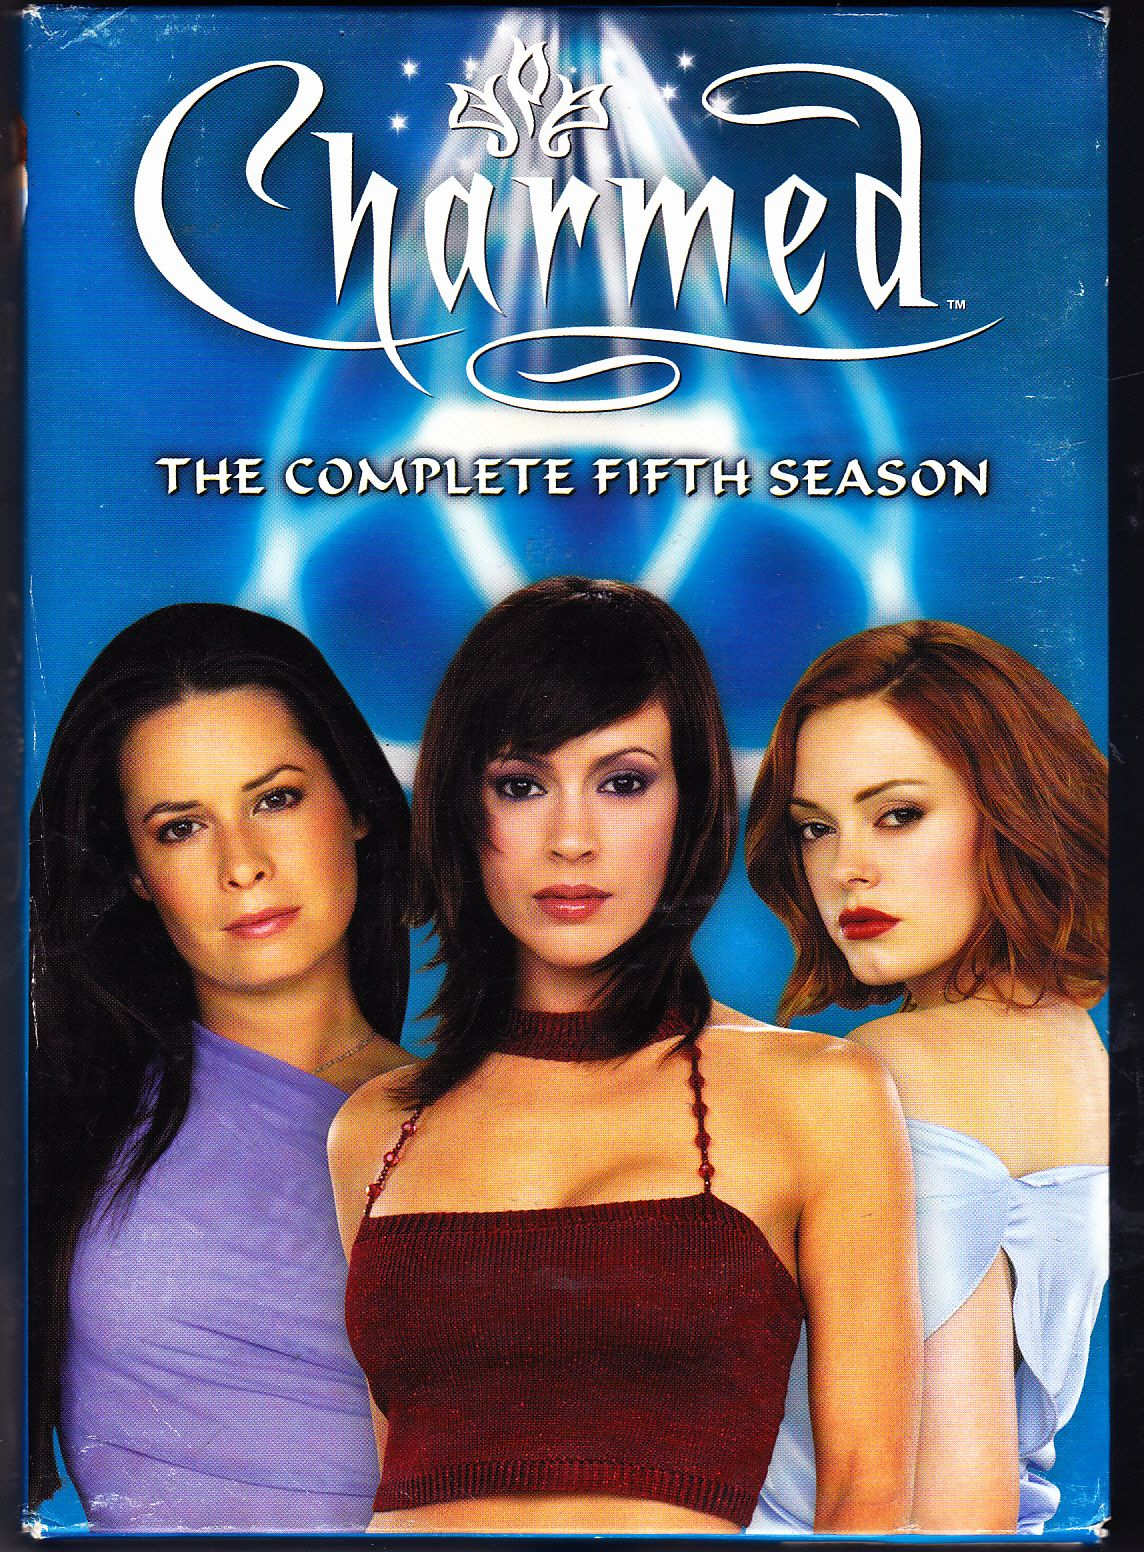 Charmed The Complete 5th Season Dvd 2006 6 Disc Set Very Good In 2021 Charmed Tv Dvd Seasons